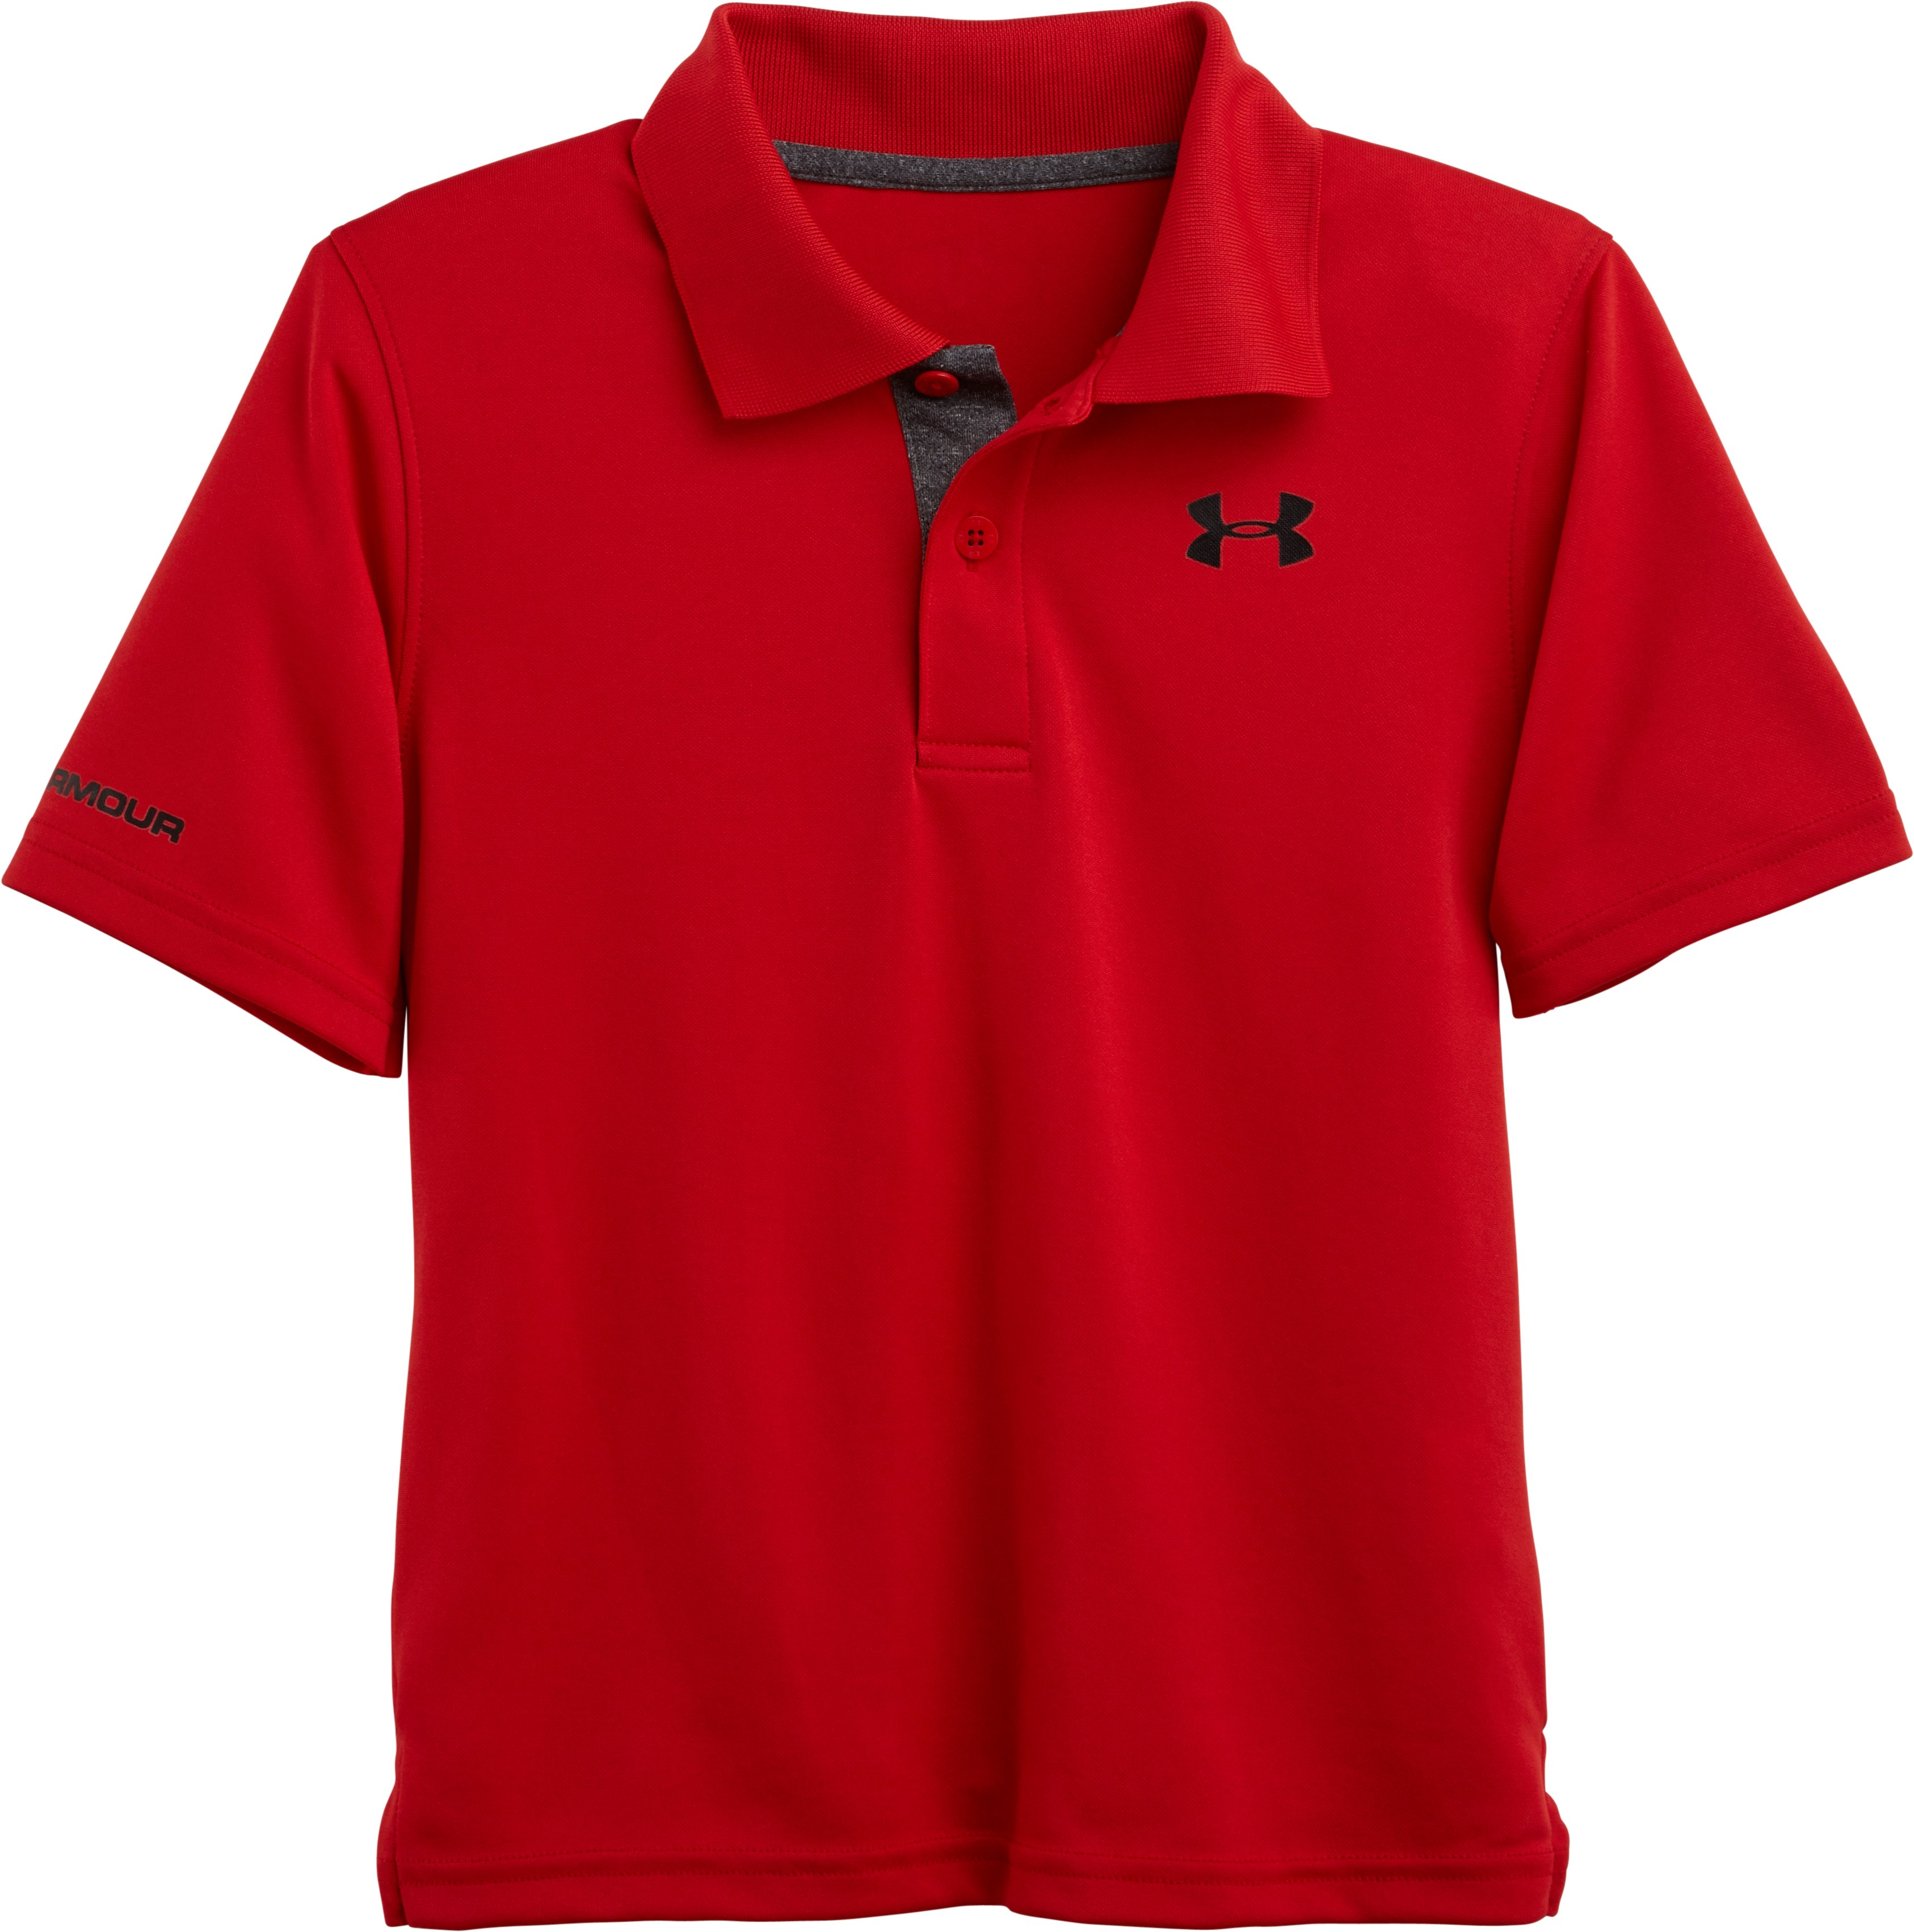 Boys' Pre-School UA Match Play Polo, Red